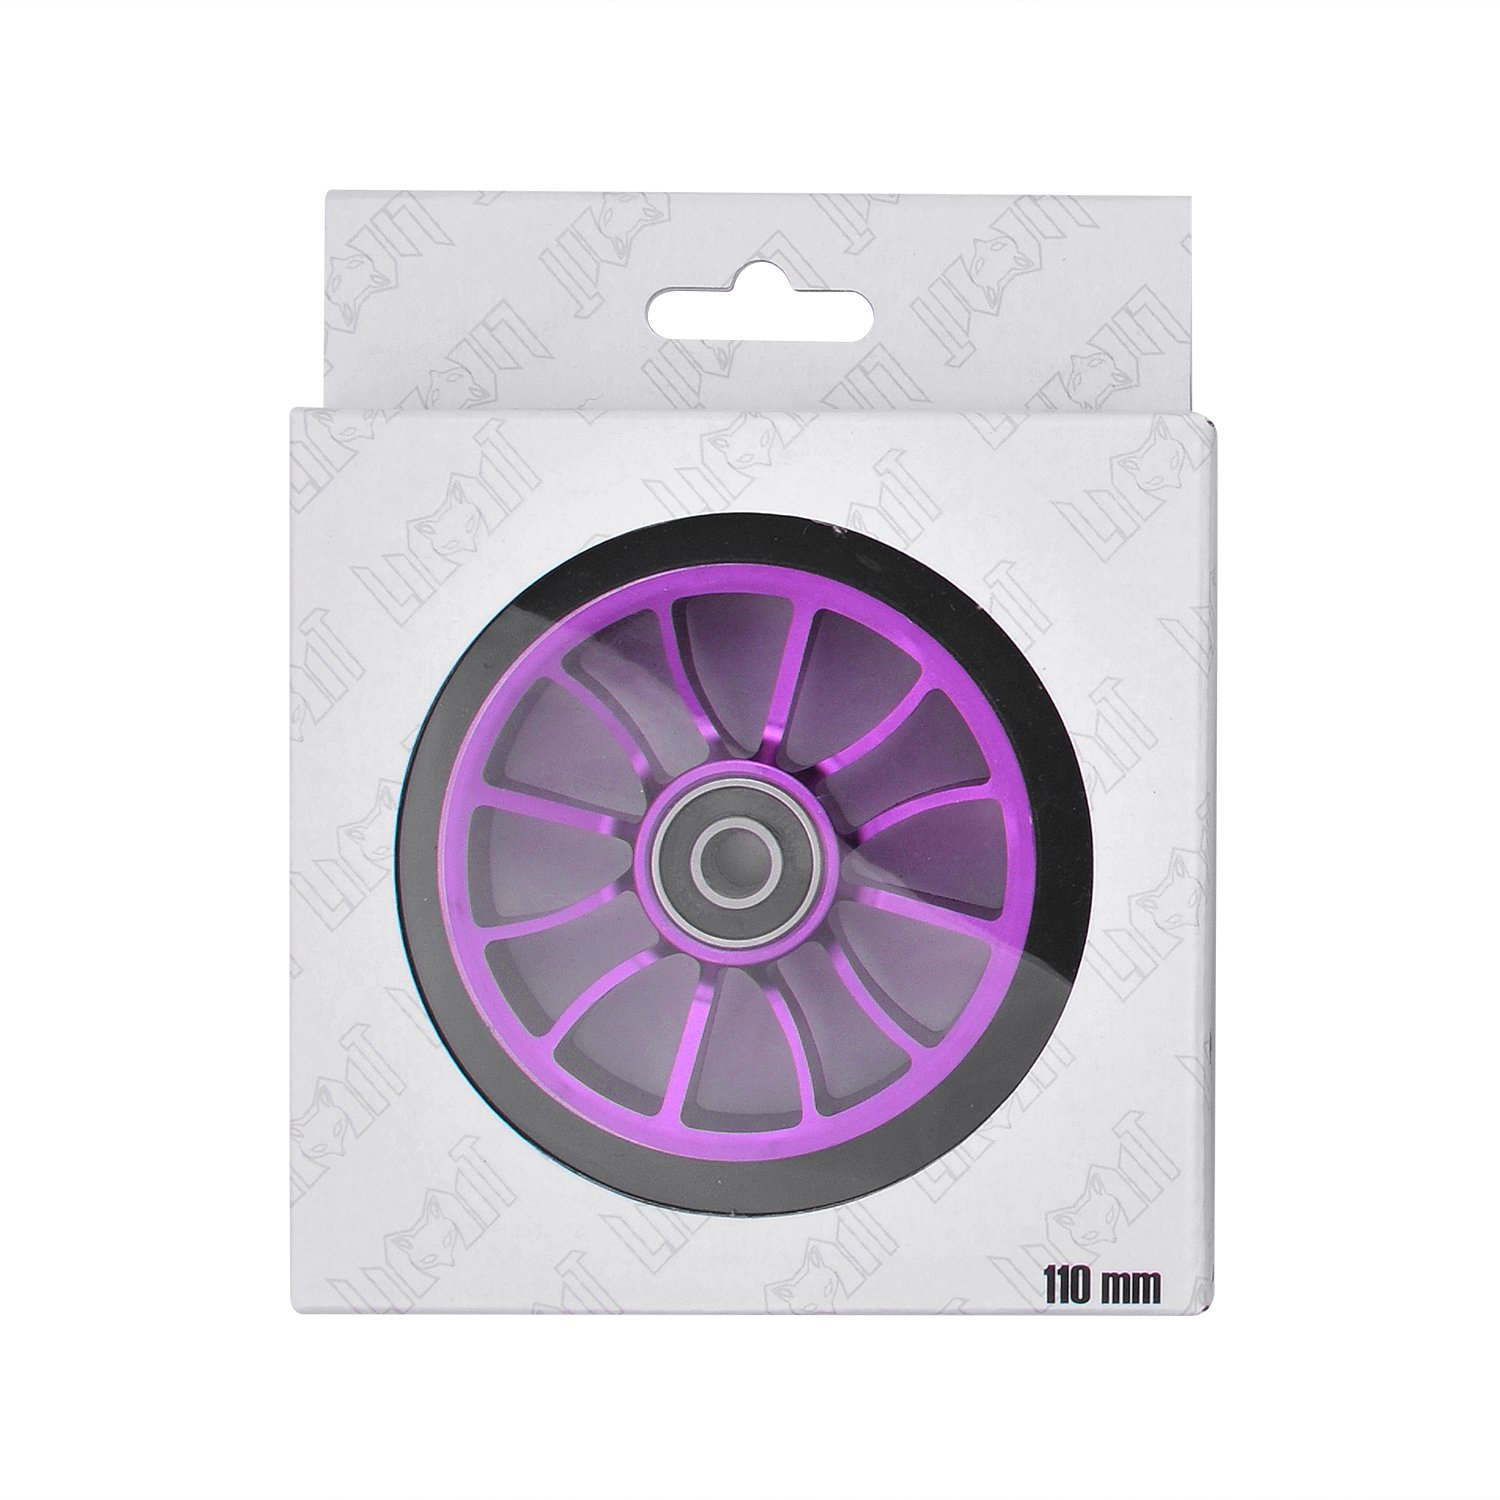 Unuber 2Pcs Replacement 110 mm Pro Stunt Scooter Wheel with Abec 9 Bearings Fit for MGP/Razor/Lucky Pro Scooters